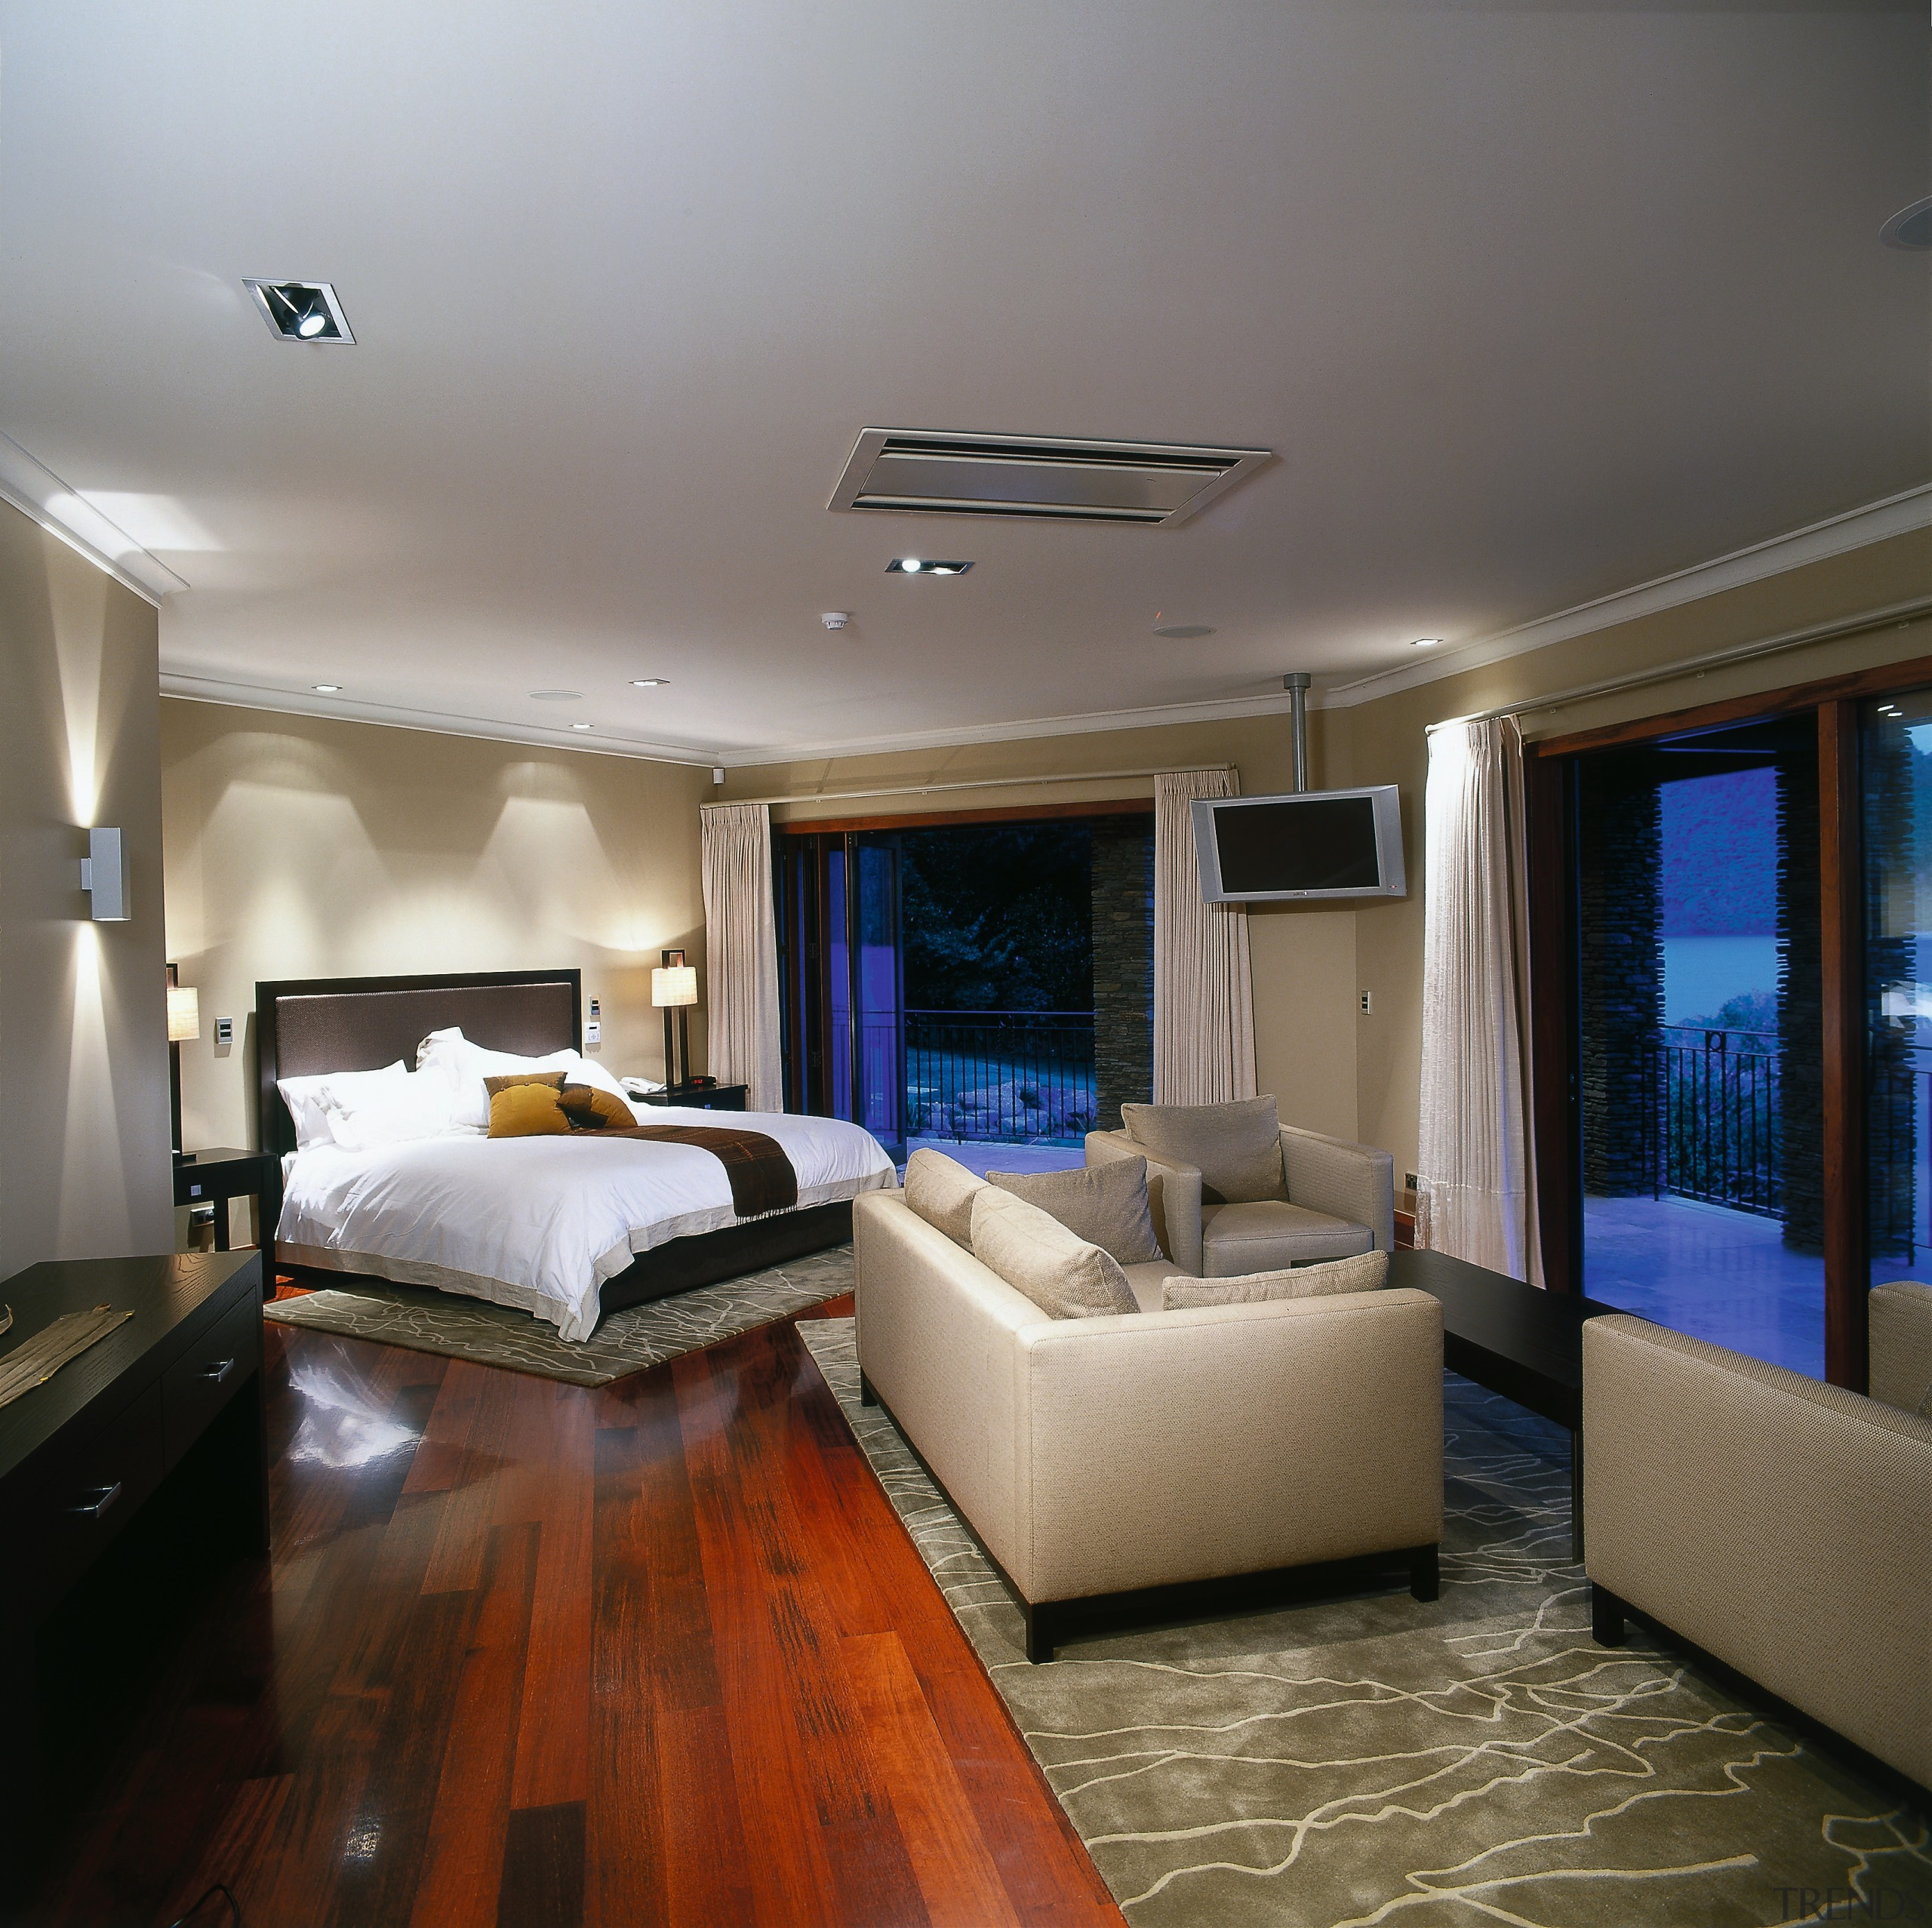 Broad view of the master bedroom. This bedroom ceiling, floor, interior design, living room, real estate, room, suite, gray, brown